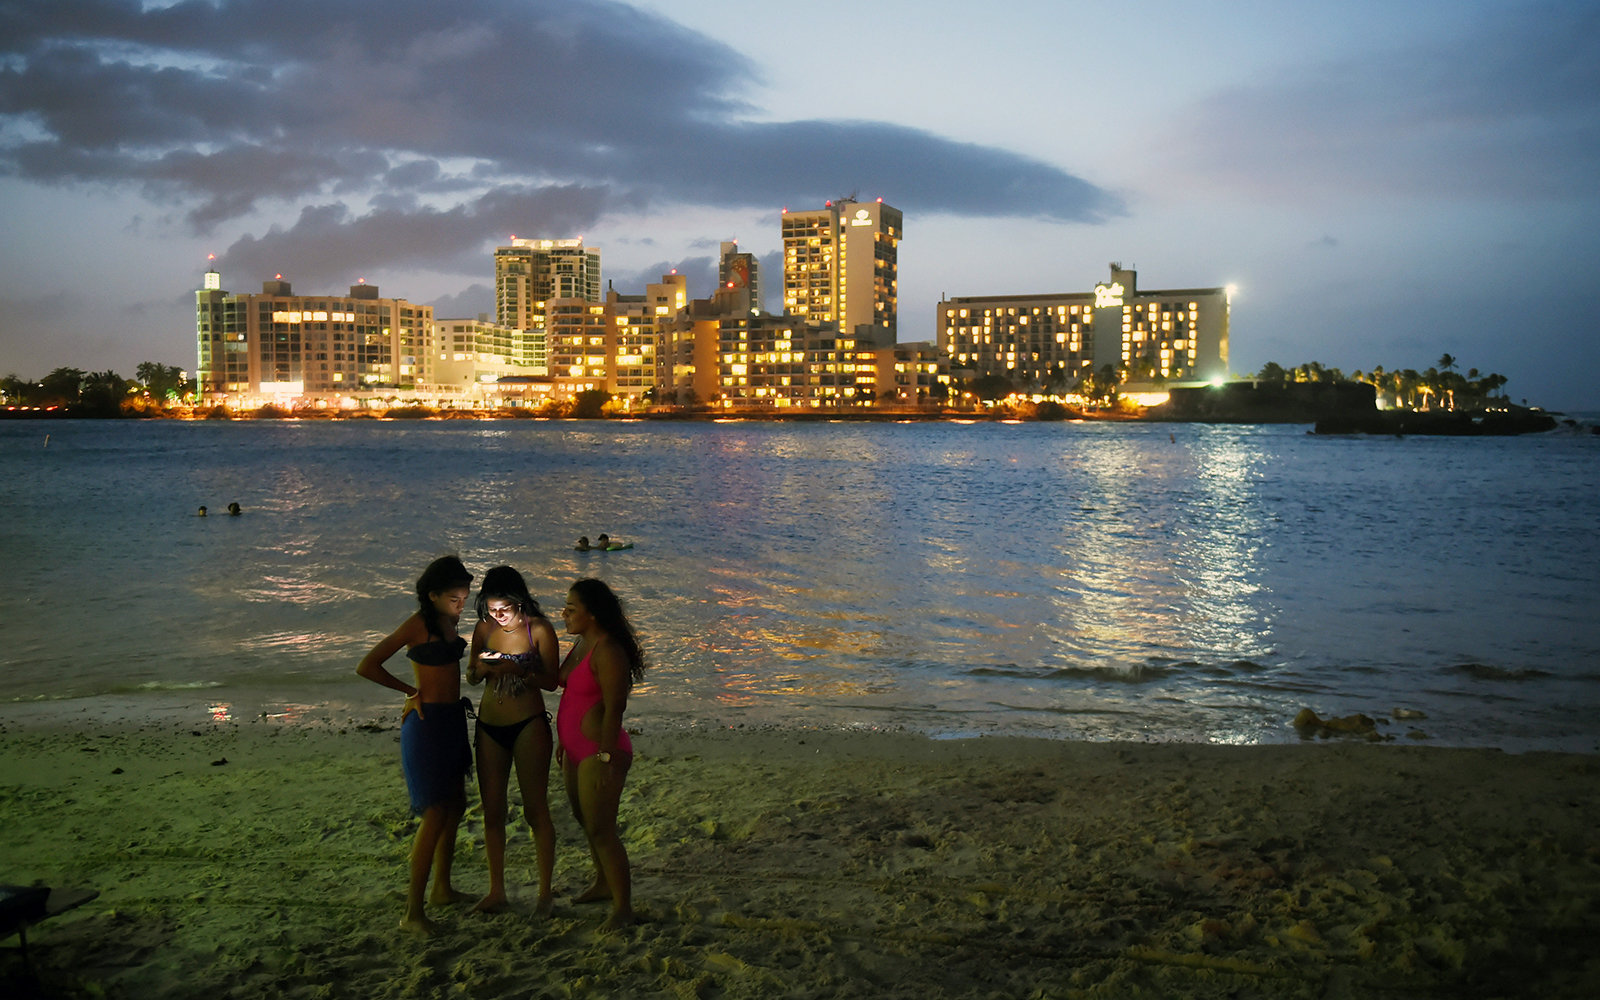 SAN JUAN, PUERTO RICO - JULY 04: Beach goers are illuminated by a phone on Saturday July 04, 2015 in San Juan, Puerto Rico. Many people headed to local beaches and waterways to spend the Fourth of July. (Photo by Matt McClain/ The Washington Post via Gett